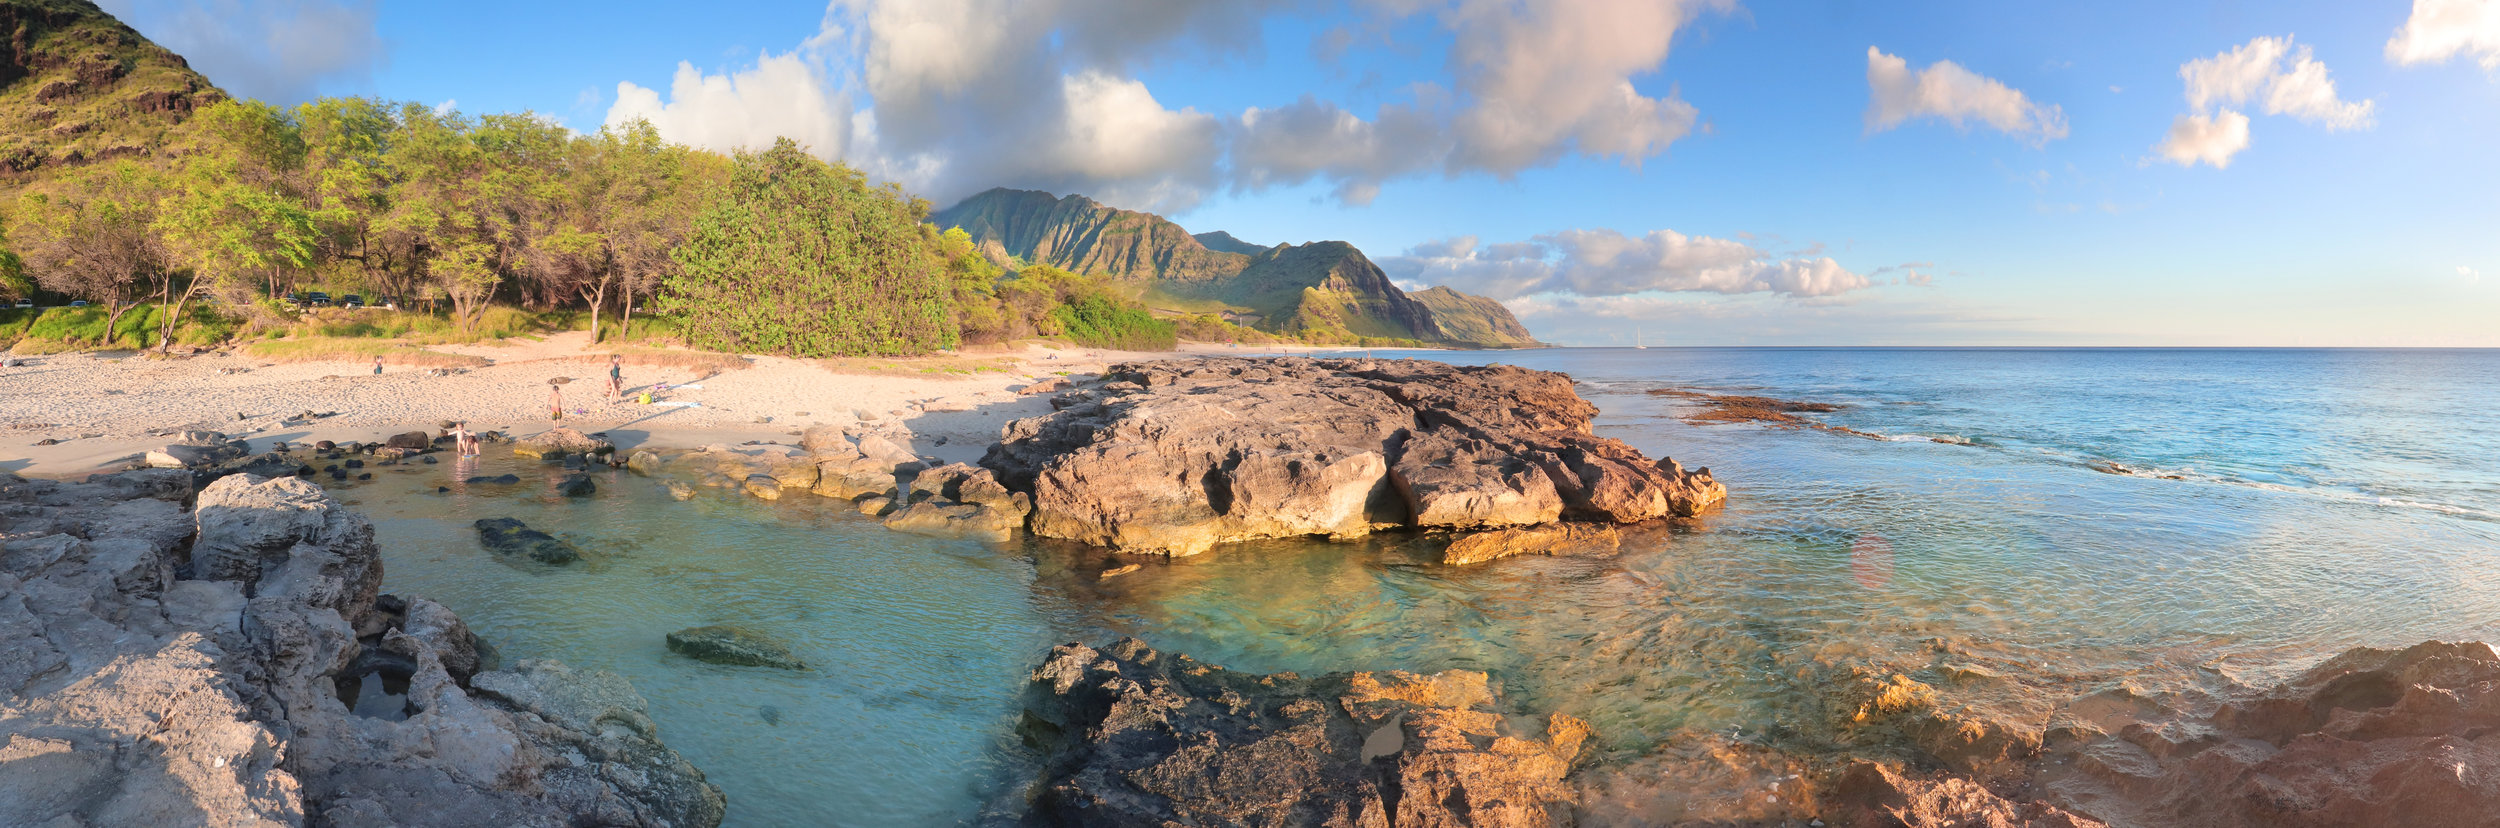 Sacred Mākua runs from the mountain to the sea. It is vital that Mākua is cleaned up after decades of military training and protected, because whatever happens mauka flows makai. Photo by Nate Yuen.